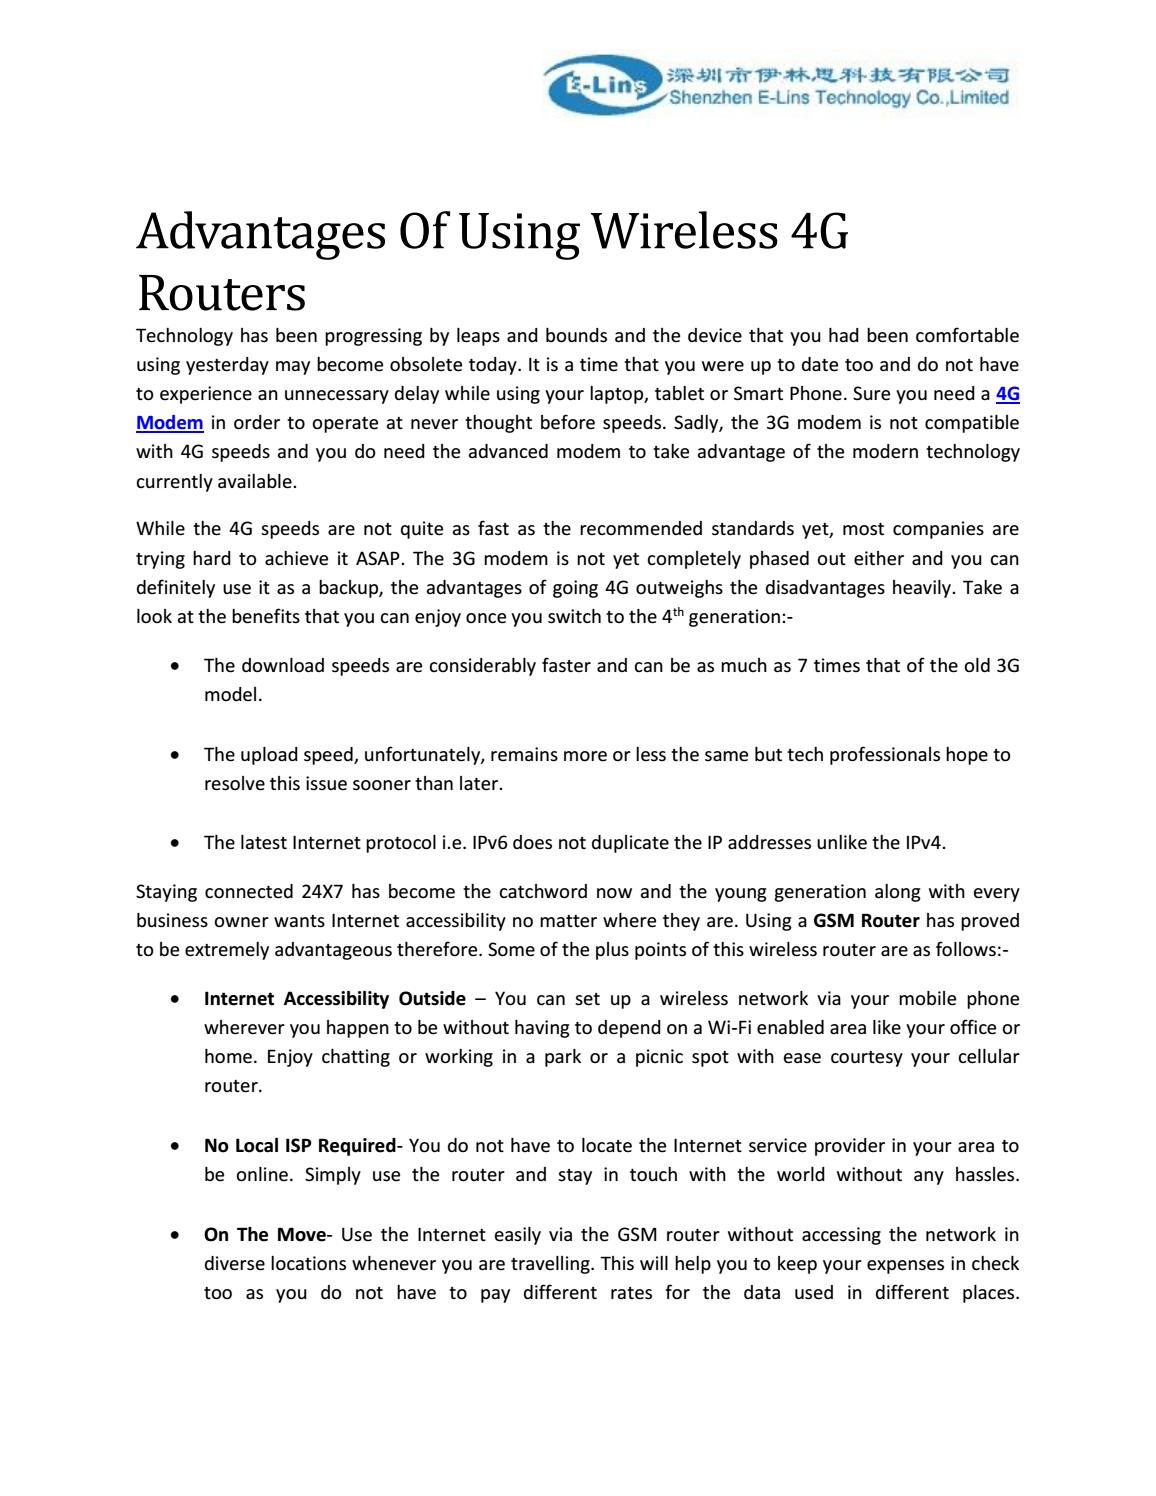 Read advantages of using wireless 4g routers by ELins